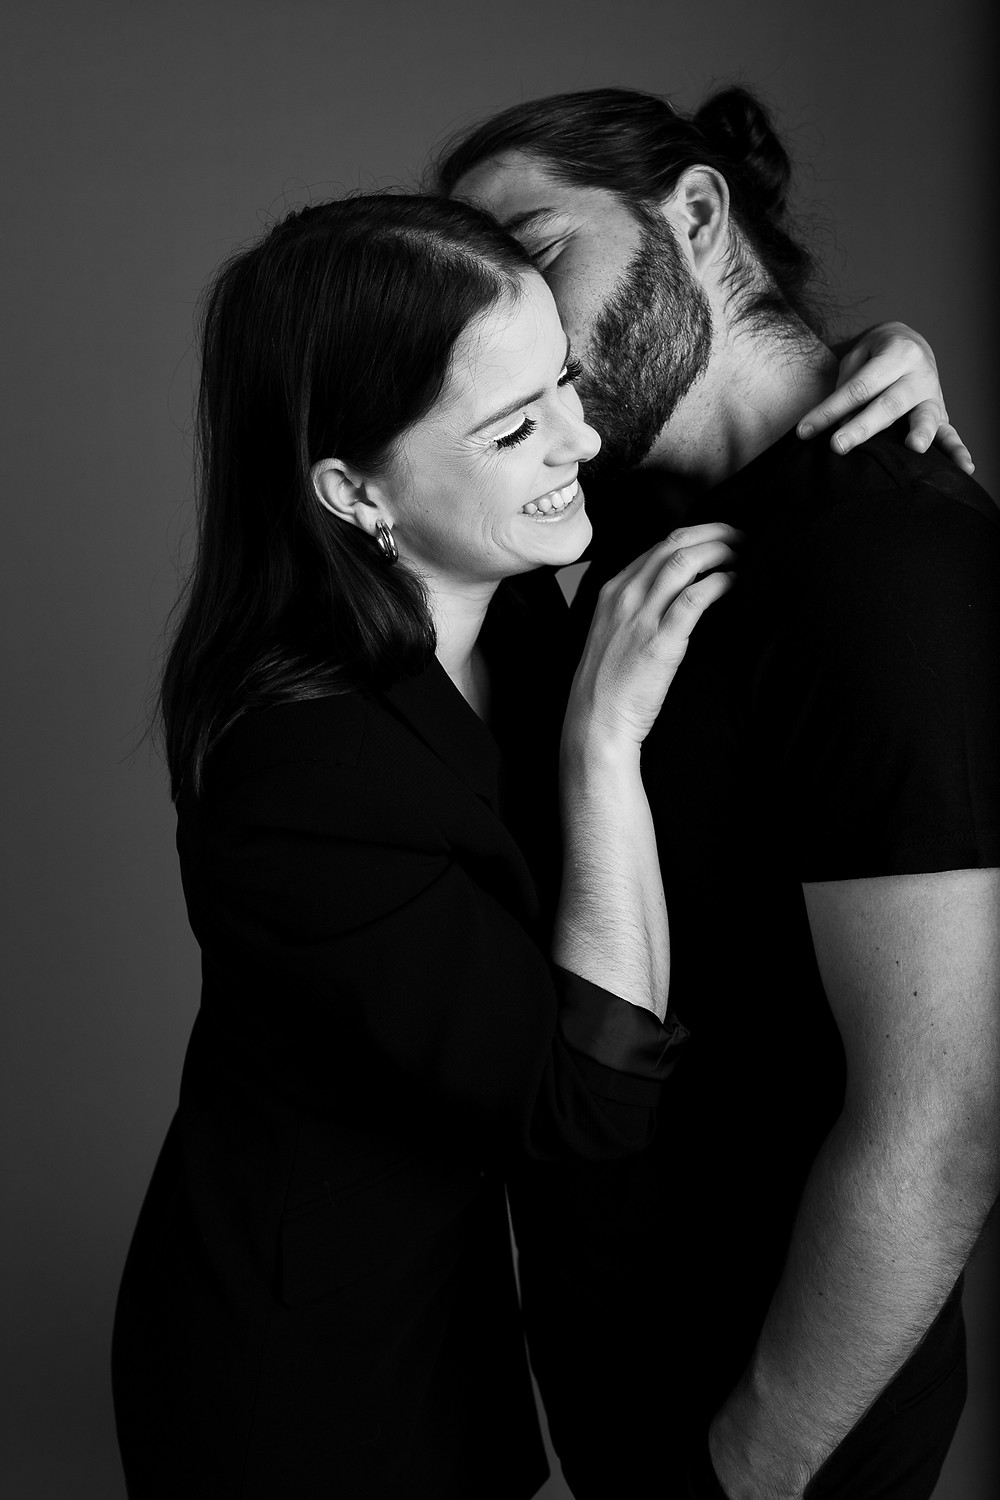 black and white image of man kissing his girlfriend's cheek